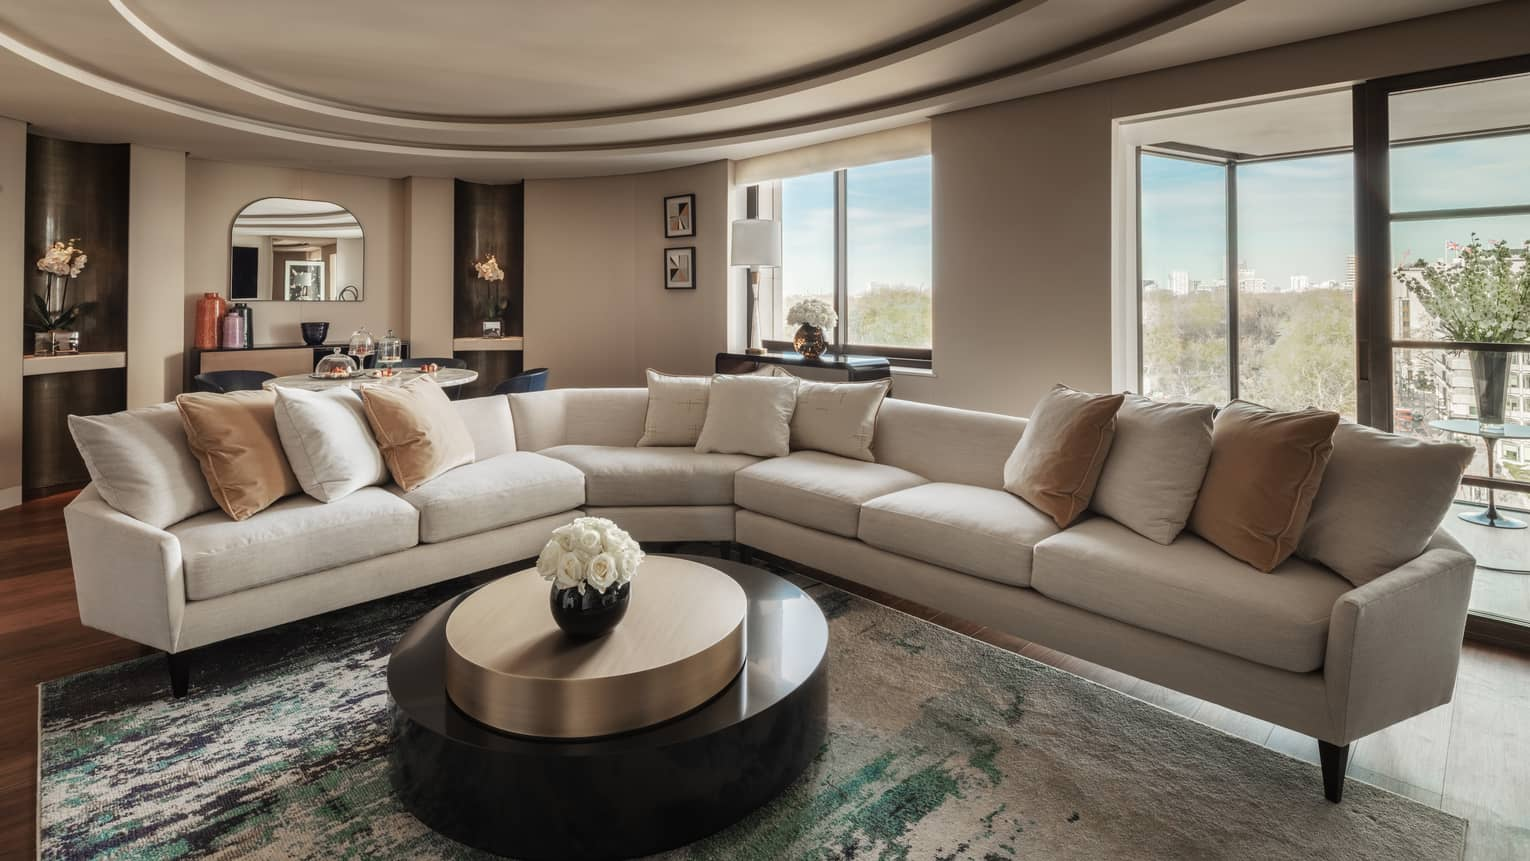 Hyde Park Suite large L shaped sofa around round coffee table